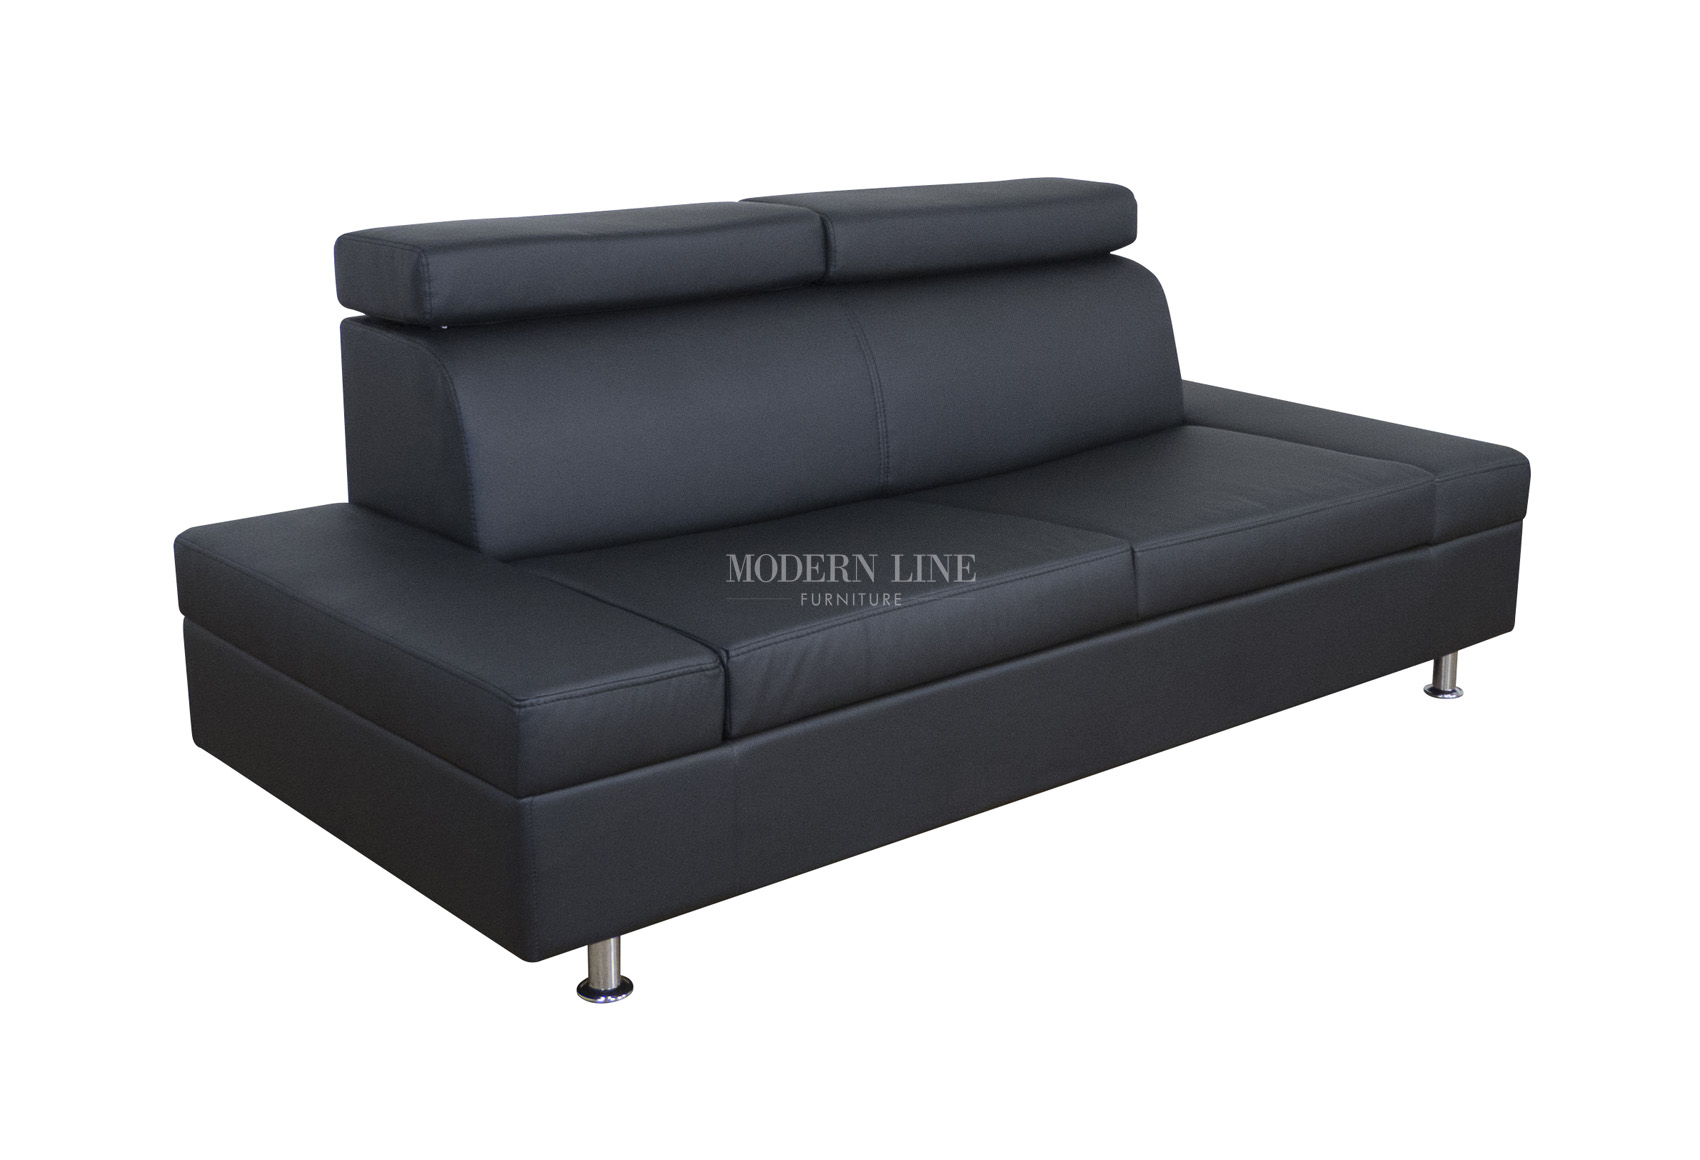 Modern line furniture sofa sleepers sofa menzilperde net for Modern line furniture